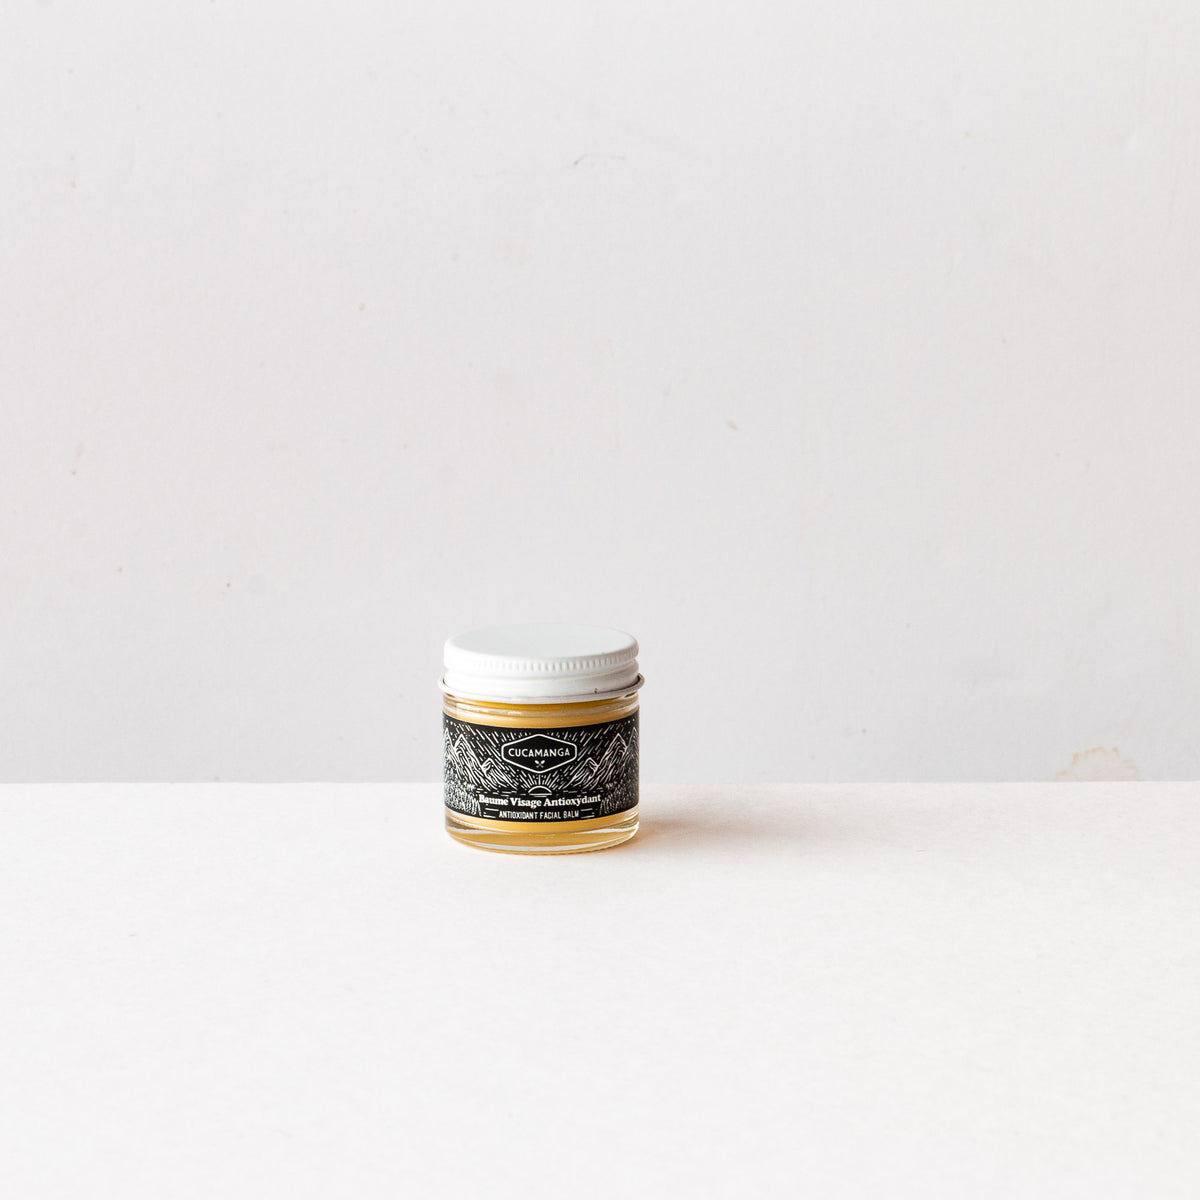 Handmade Antioxidant Facial Balm - Boreal Forest Labrador Tea & Fireweed - Sold by Chic & Basta